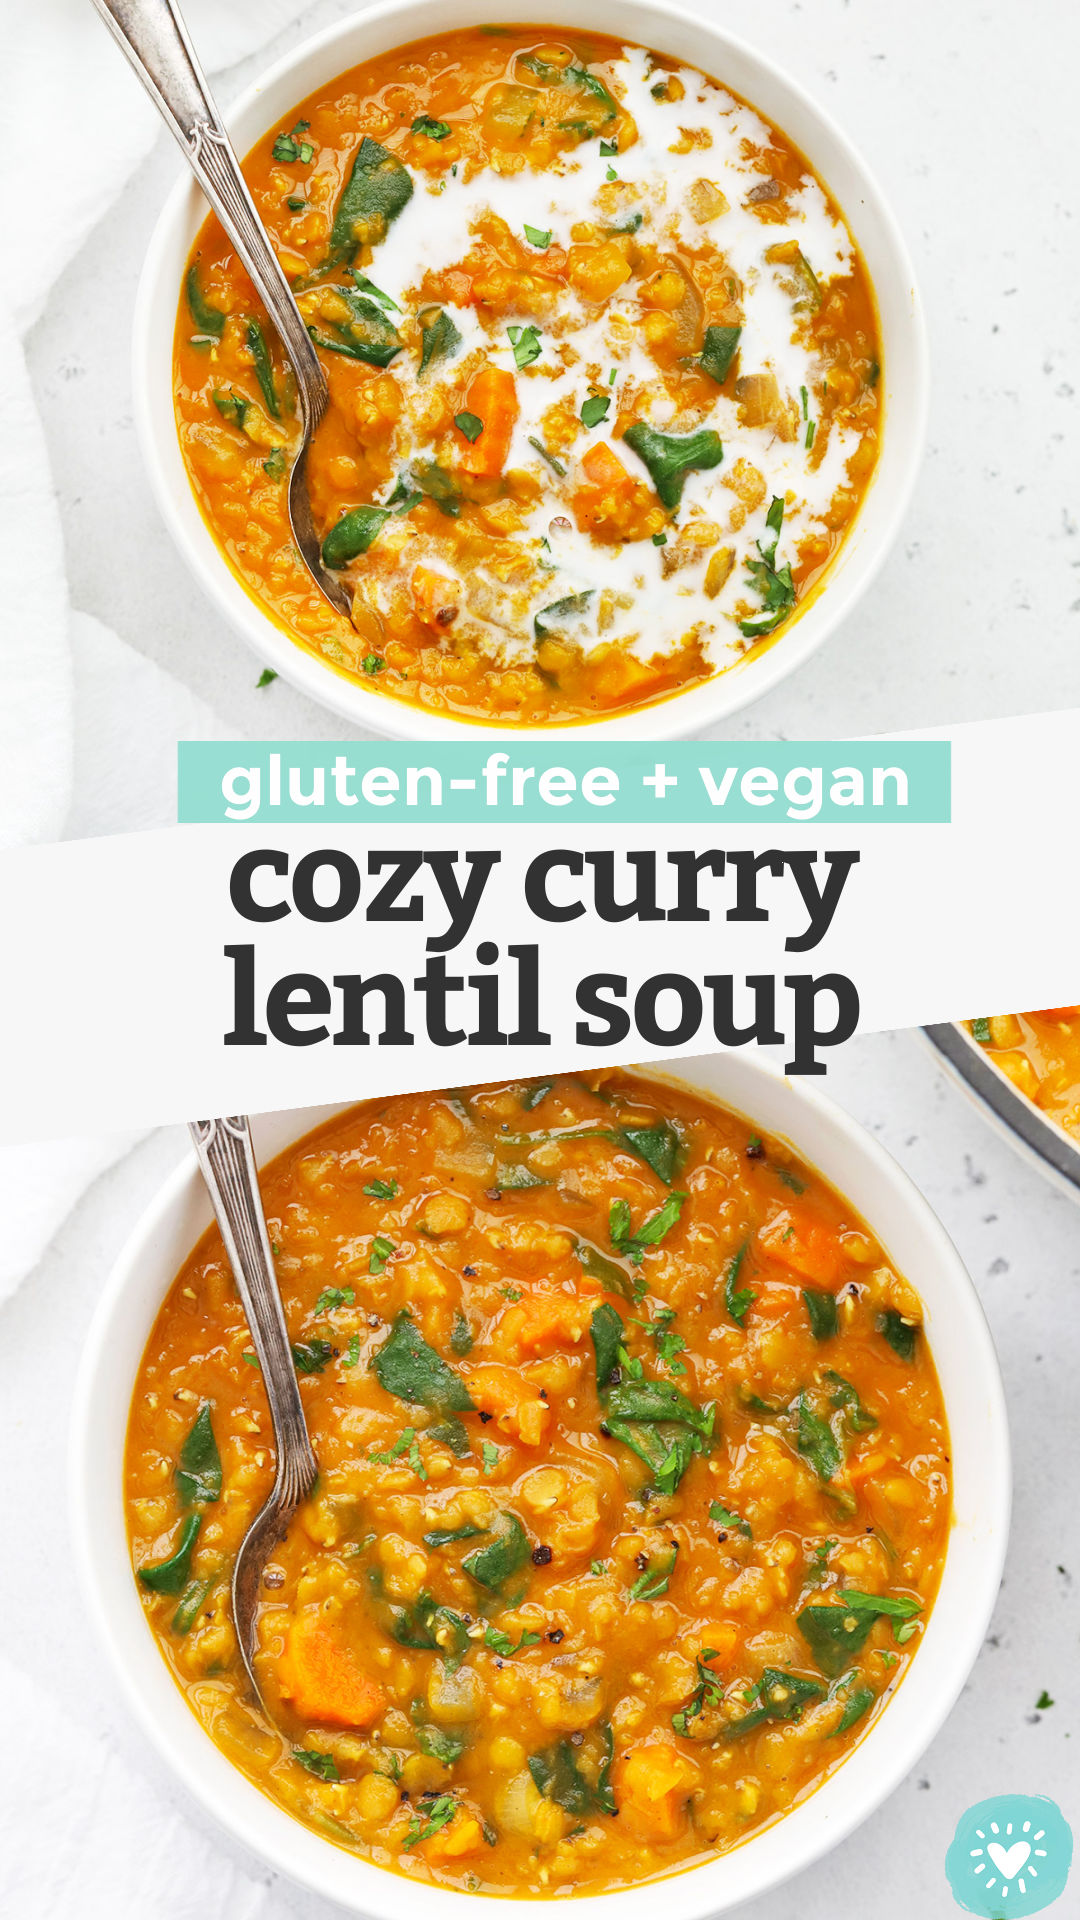 Cozy Curry Lentil Soup - This easy lentil soup recipe is perfect for cold weather and cozy days in. (Vegan, Gluten-Free) // Vegan Lentil Soup // Healthy Lentil Soup // Healthy Soup Recipe // Healthy Lunch // Meal Prep Lunch #lentilsoup #healthysoup #healthylunch #vegan #glutenfree